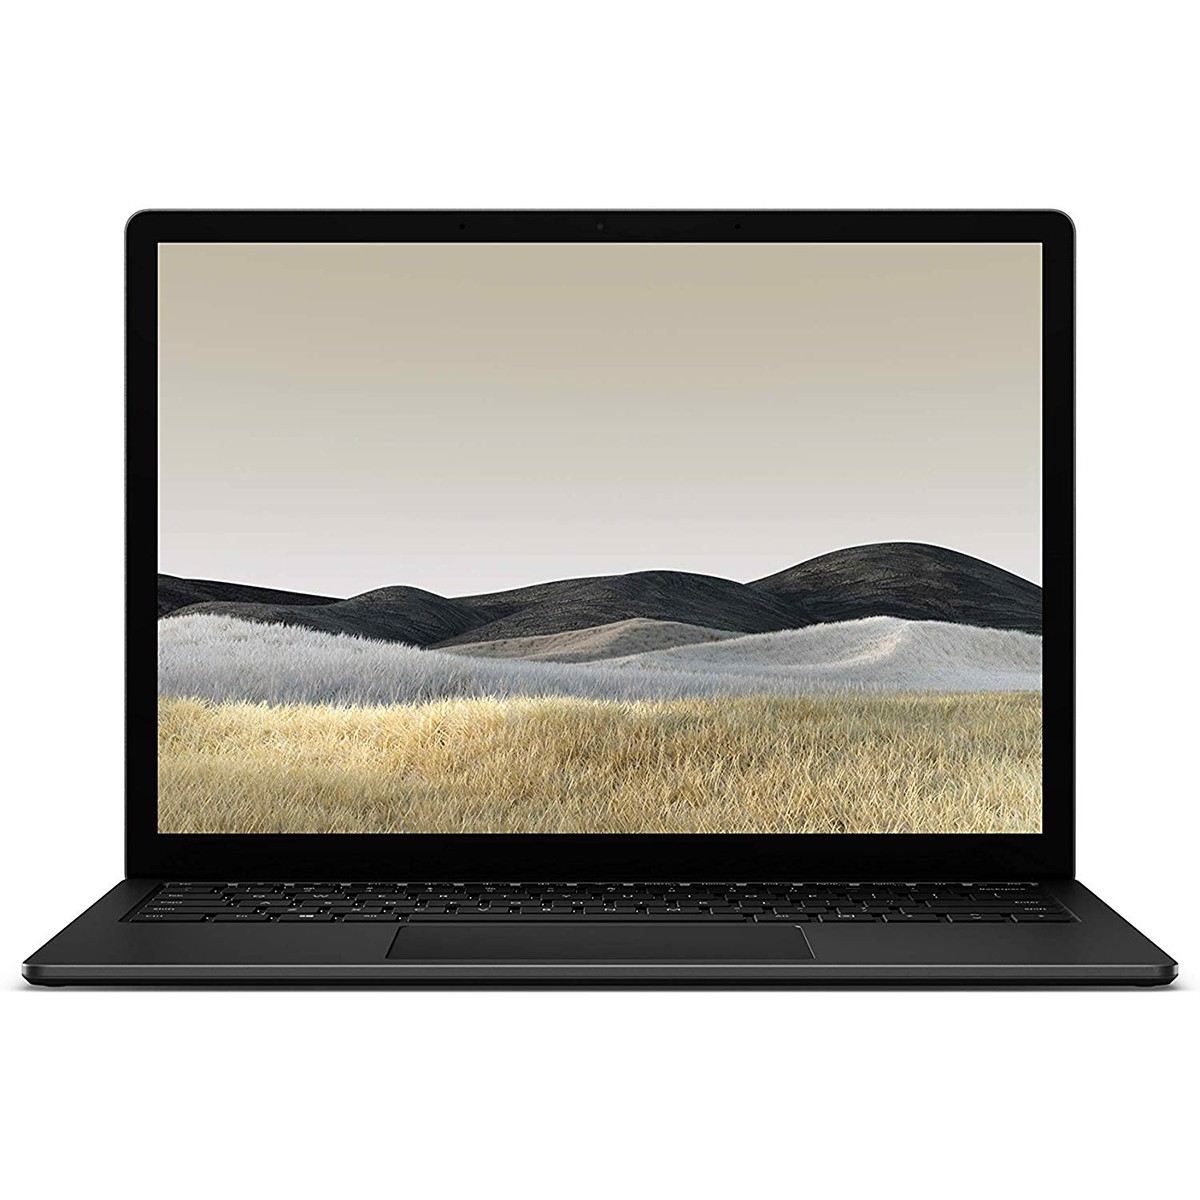 Surface Laptop 3 (15 Inch, 2019) AMD Ryzen 5 3850U / 8GB / 256GB (NEW)